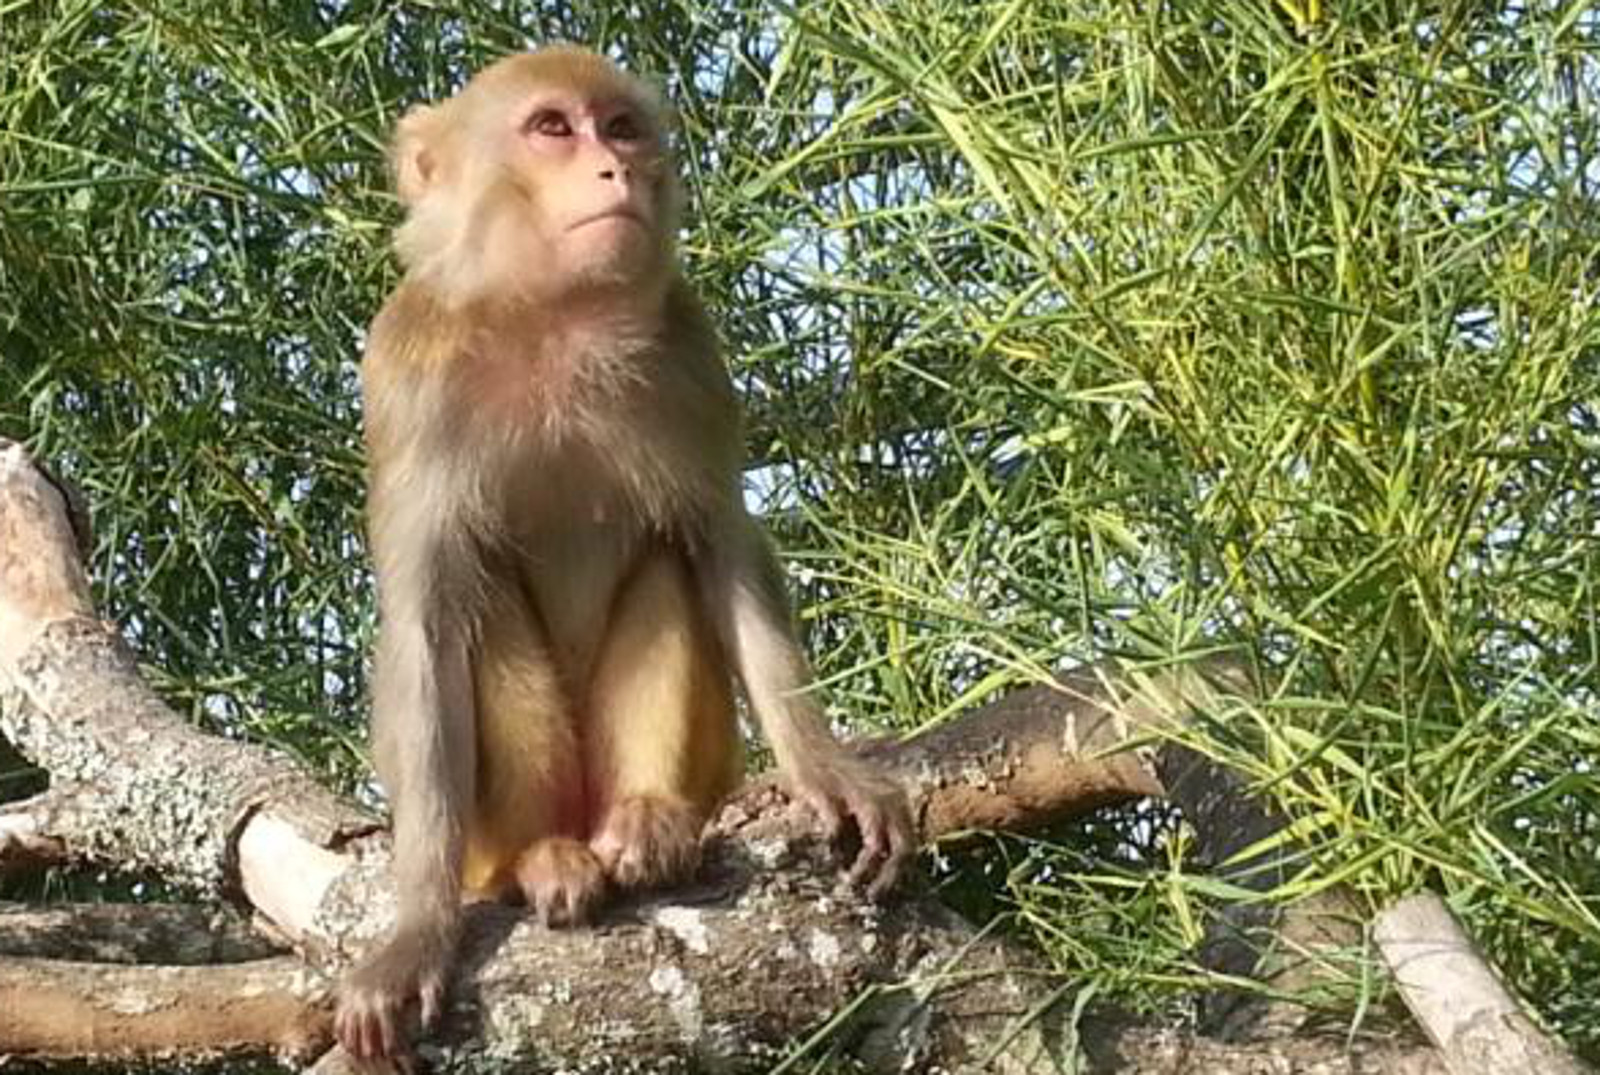 One Monkey's Journey From Life in a Cage to Freedom at a Texas Sanctuary